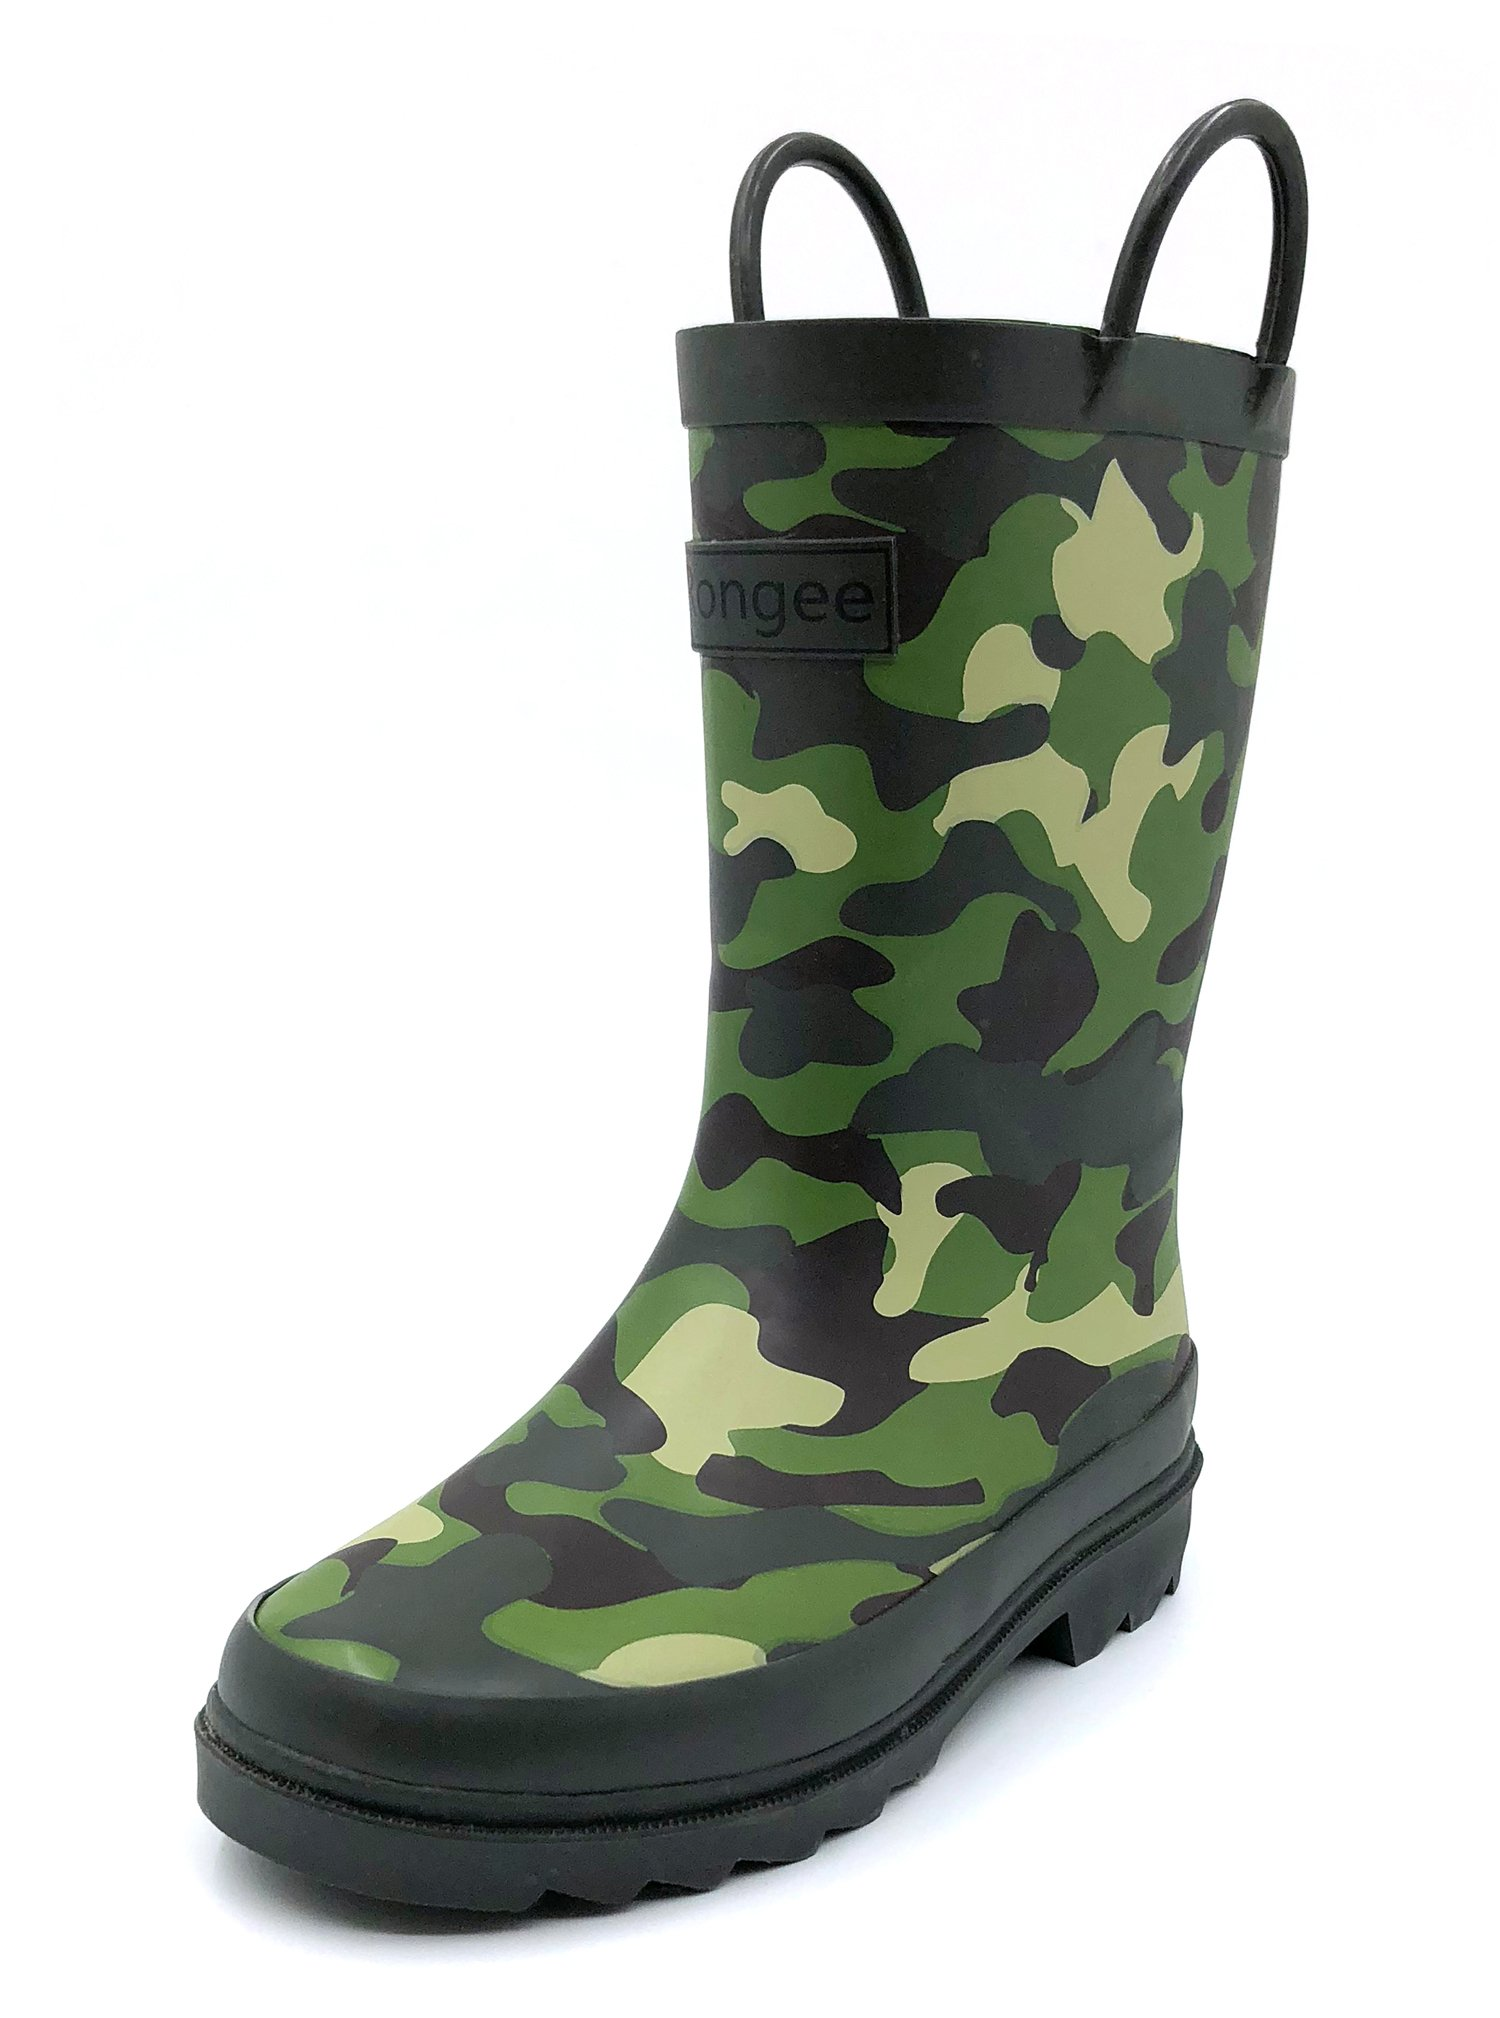 Rongee Camouflage Printed Matte Rubber Rain Boots for Kids Boys with Handles and Oxford Bag Packed (1M US Little Kid)